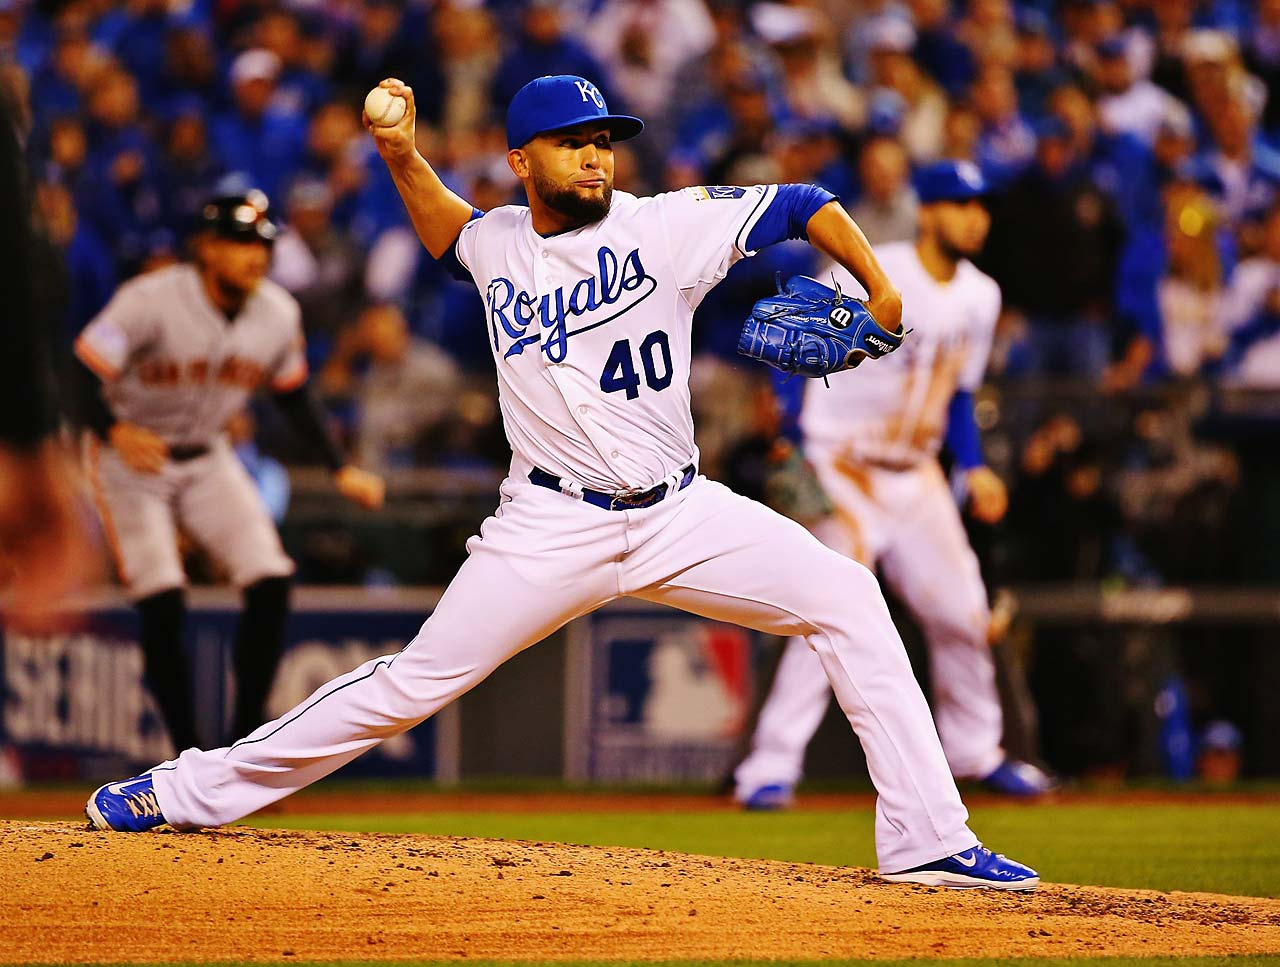 Kelvin Herrera struck out four Giants in 2 2/3 innings after relieving starter Jeremy Guthrie.